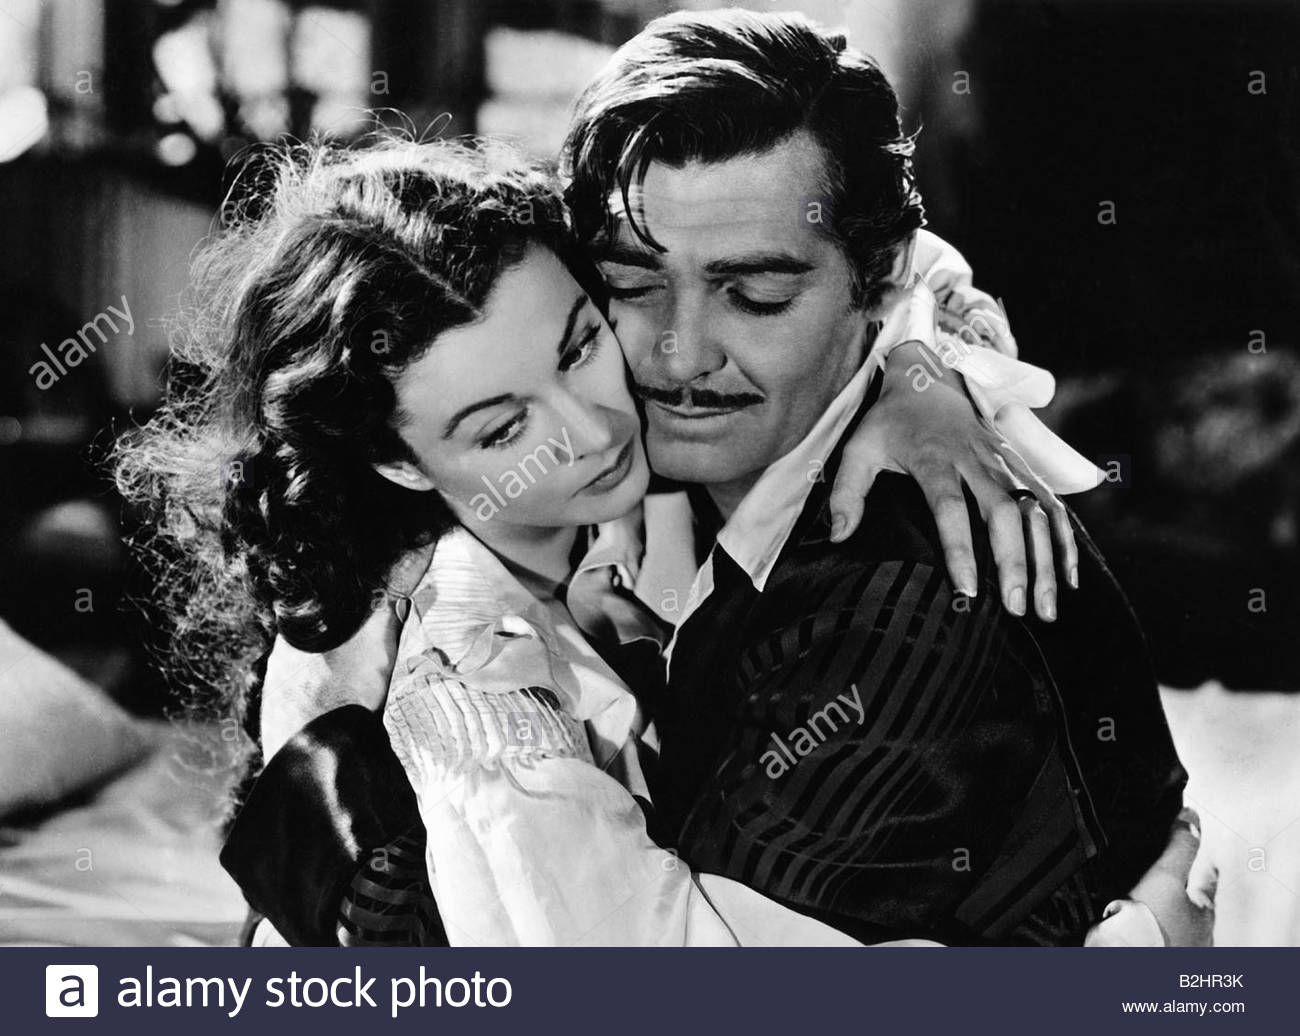 a review of the movie gone with the wind by victor fleming The story of gone with the wind is the story of early hollywood, the studio system, the enormous influence of producers and how to work the publicity machine the film was already legendary before .